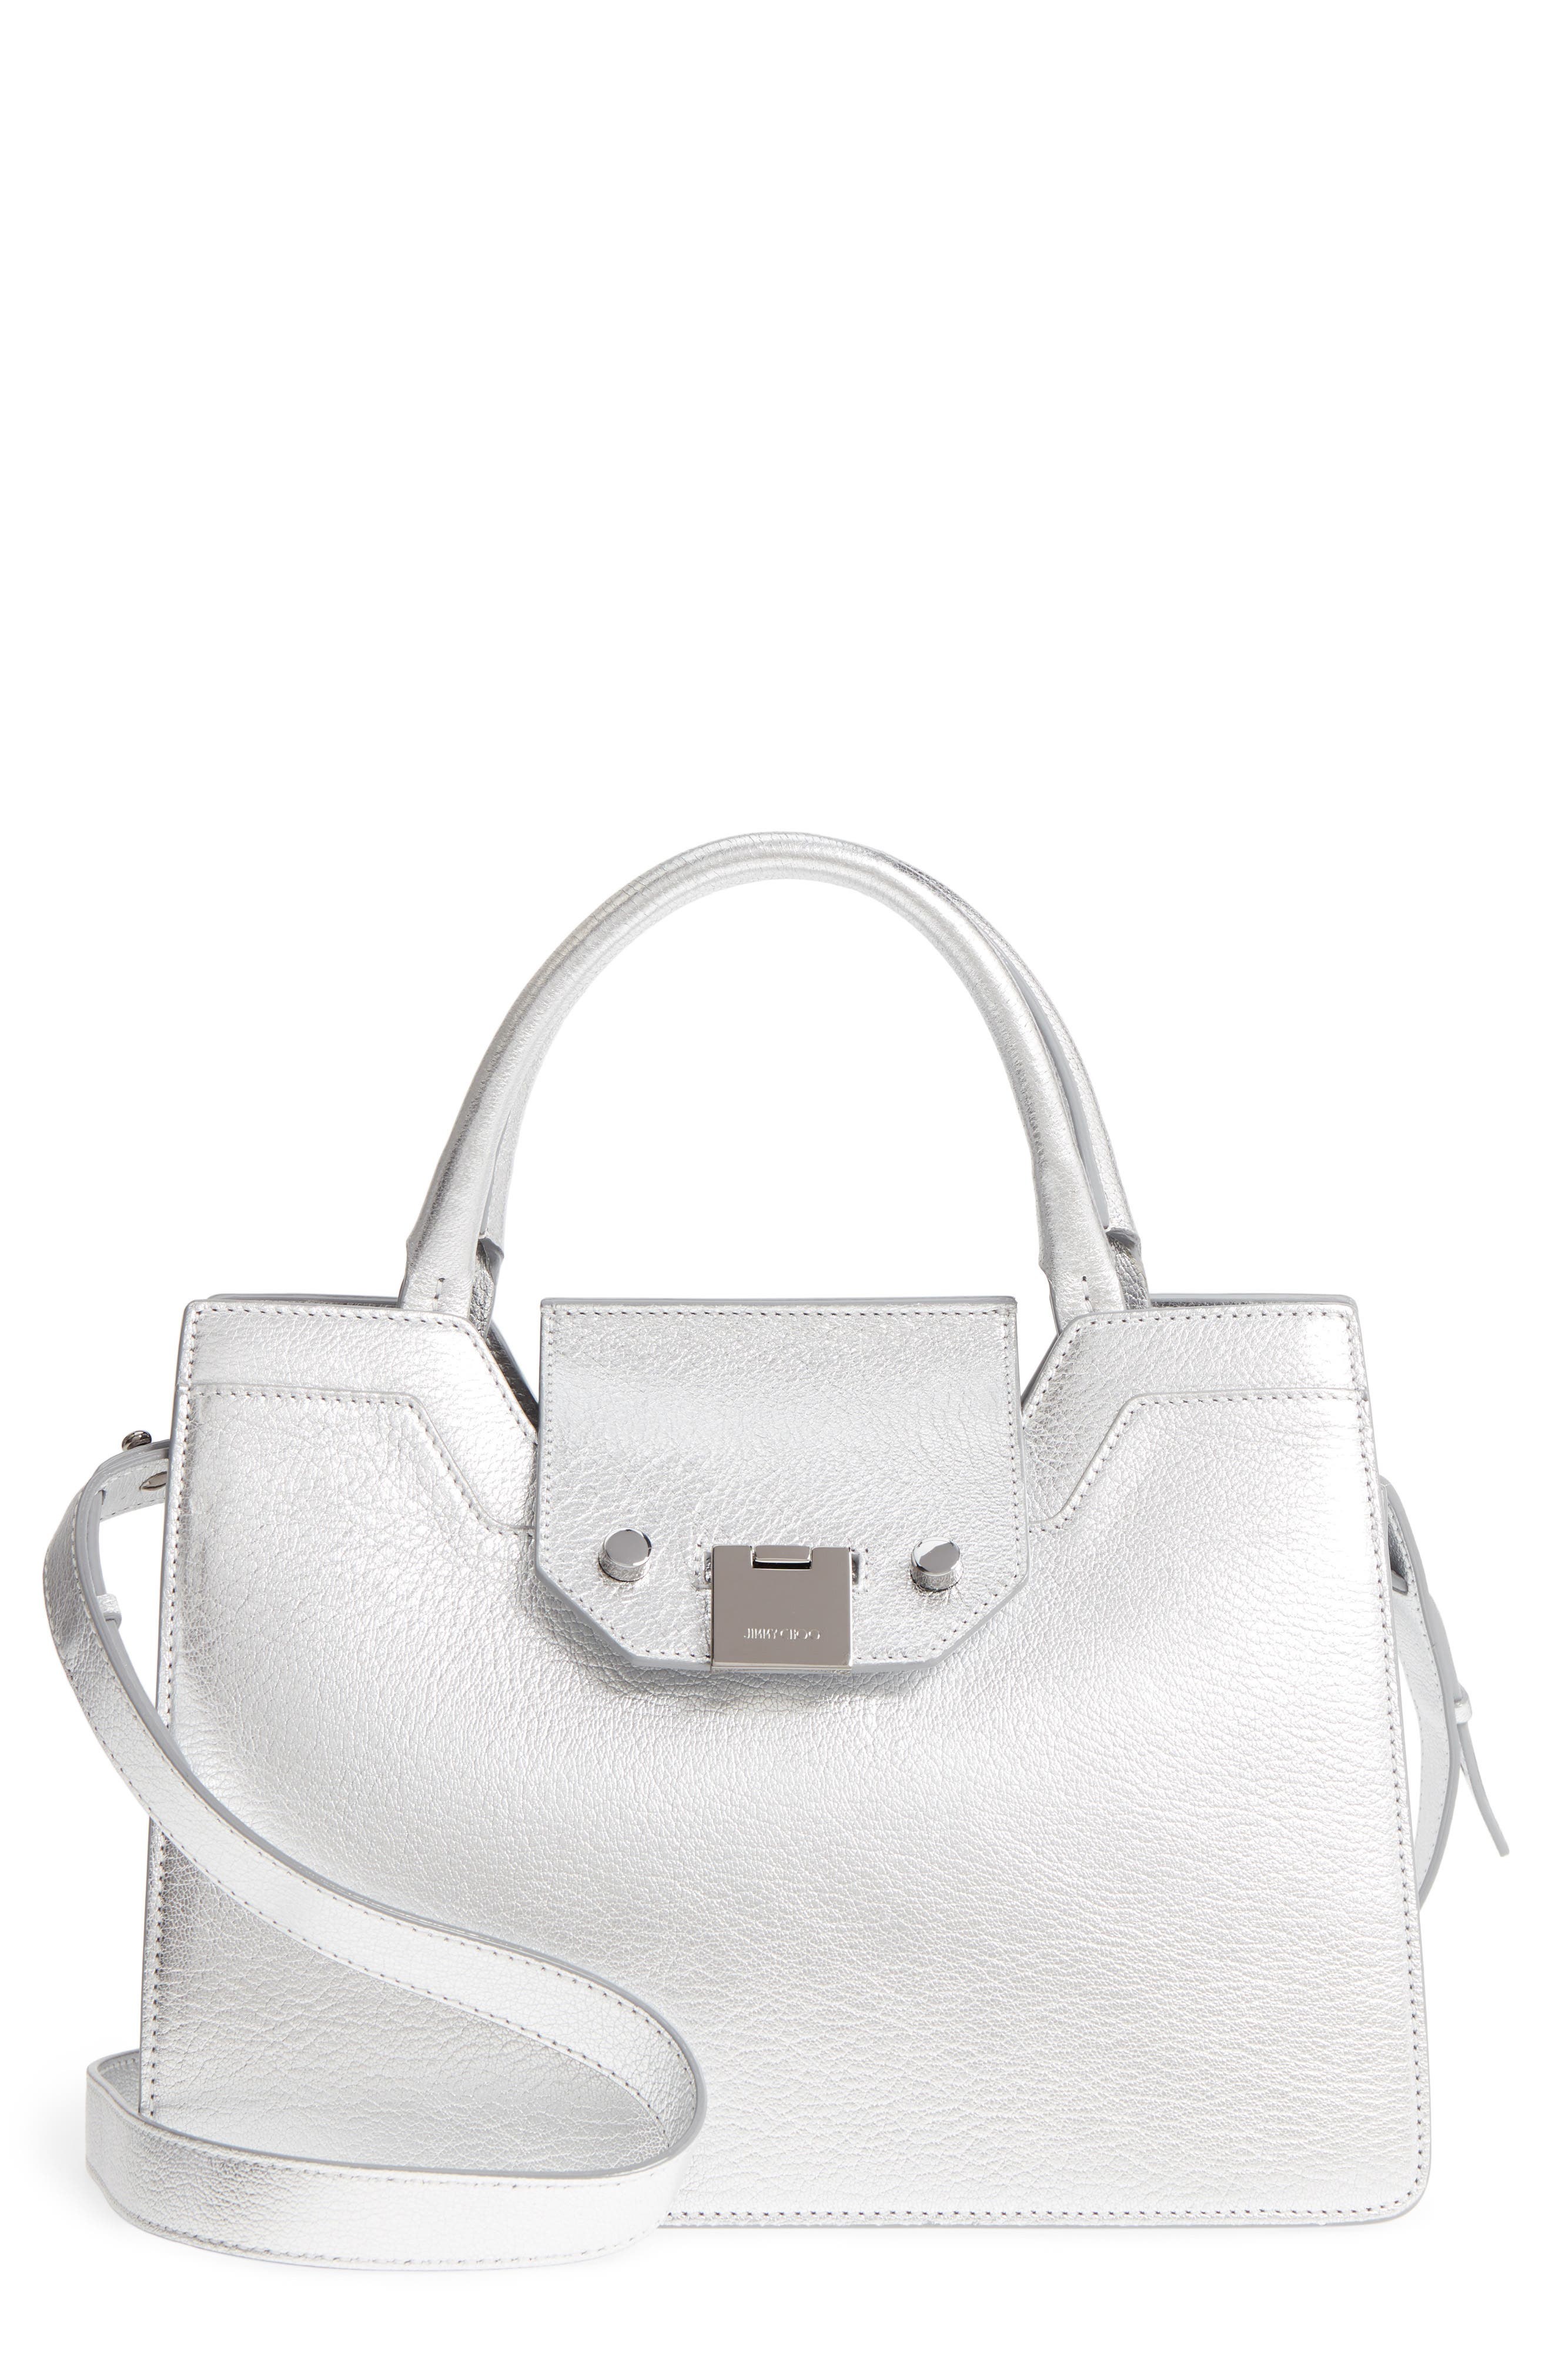 Small Rebel Metallic Leather Tote,                             Main thumbnail 1, color,                             Silver